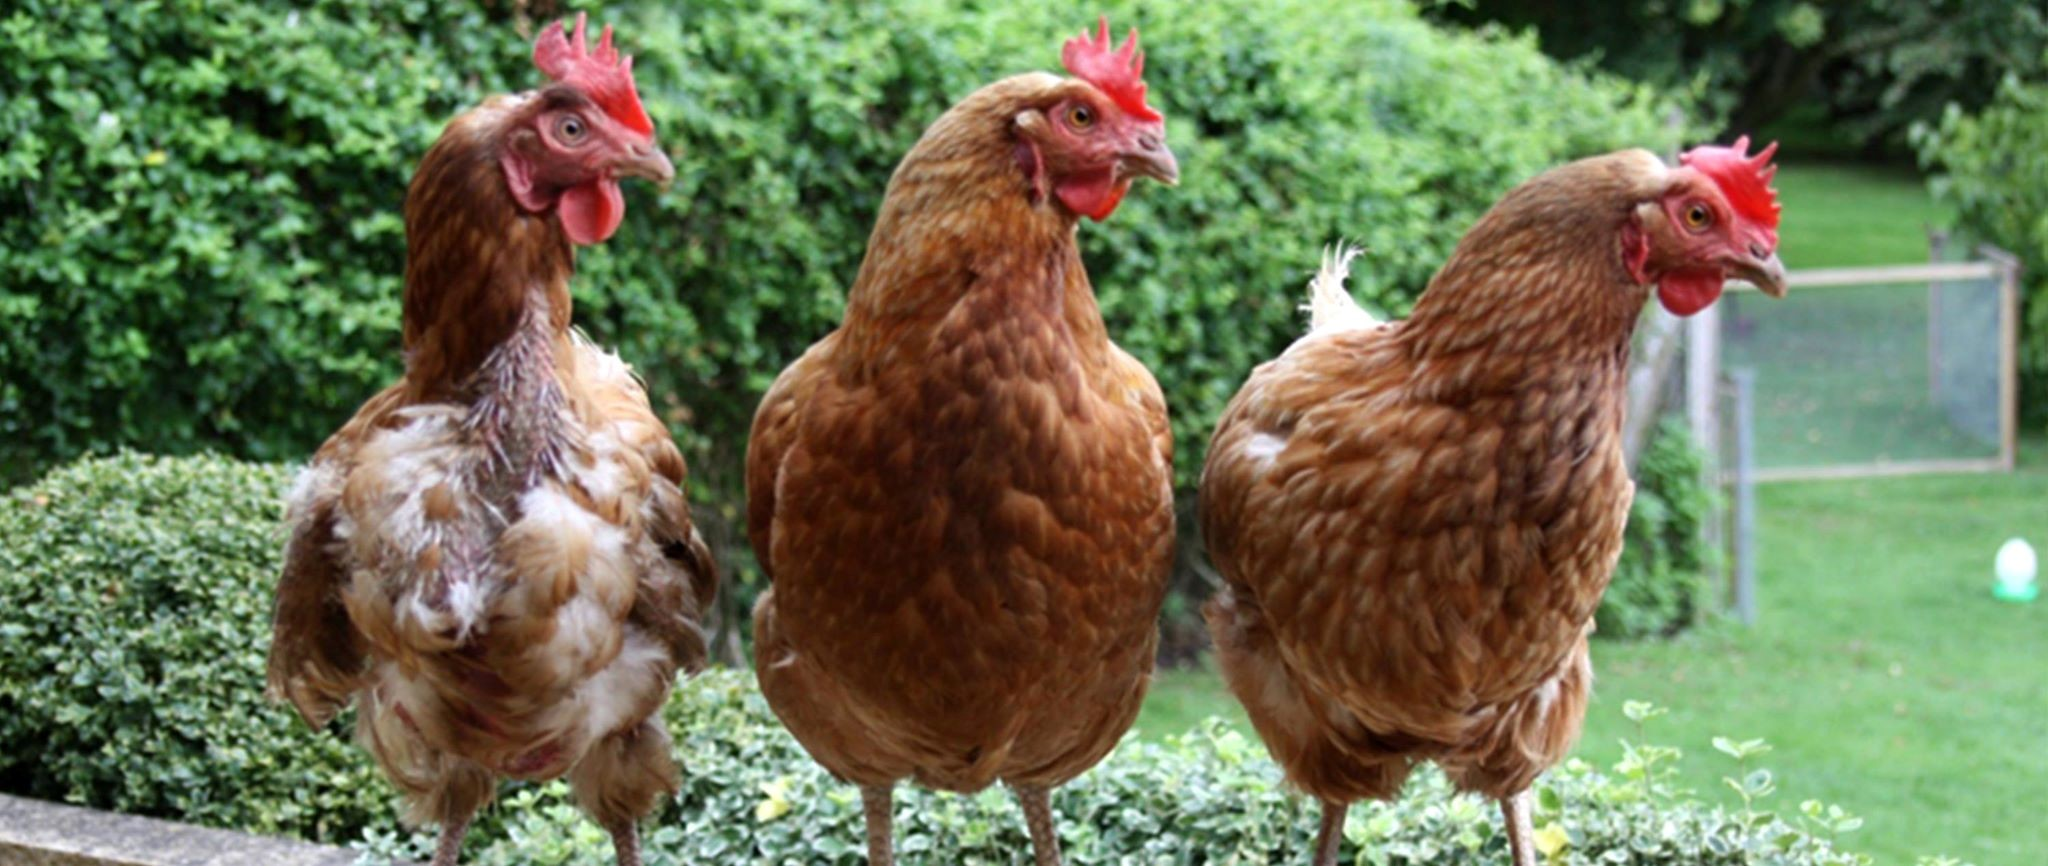 APPEAL: Dozens of hens are still without homes. Picture: British Hen Welfare Trust